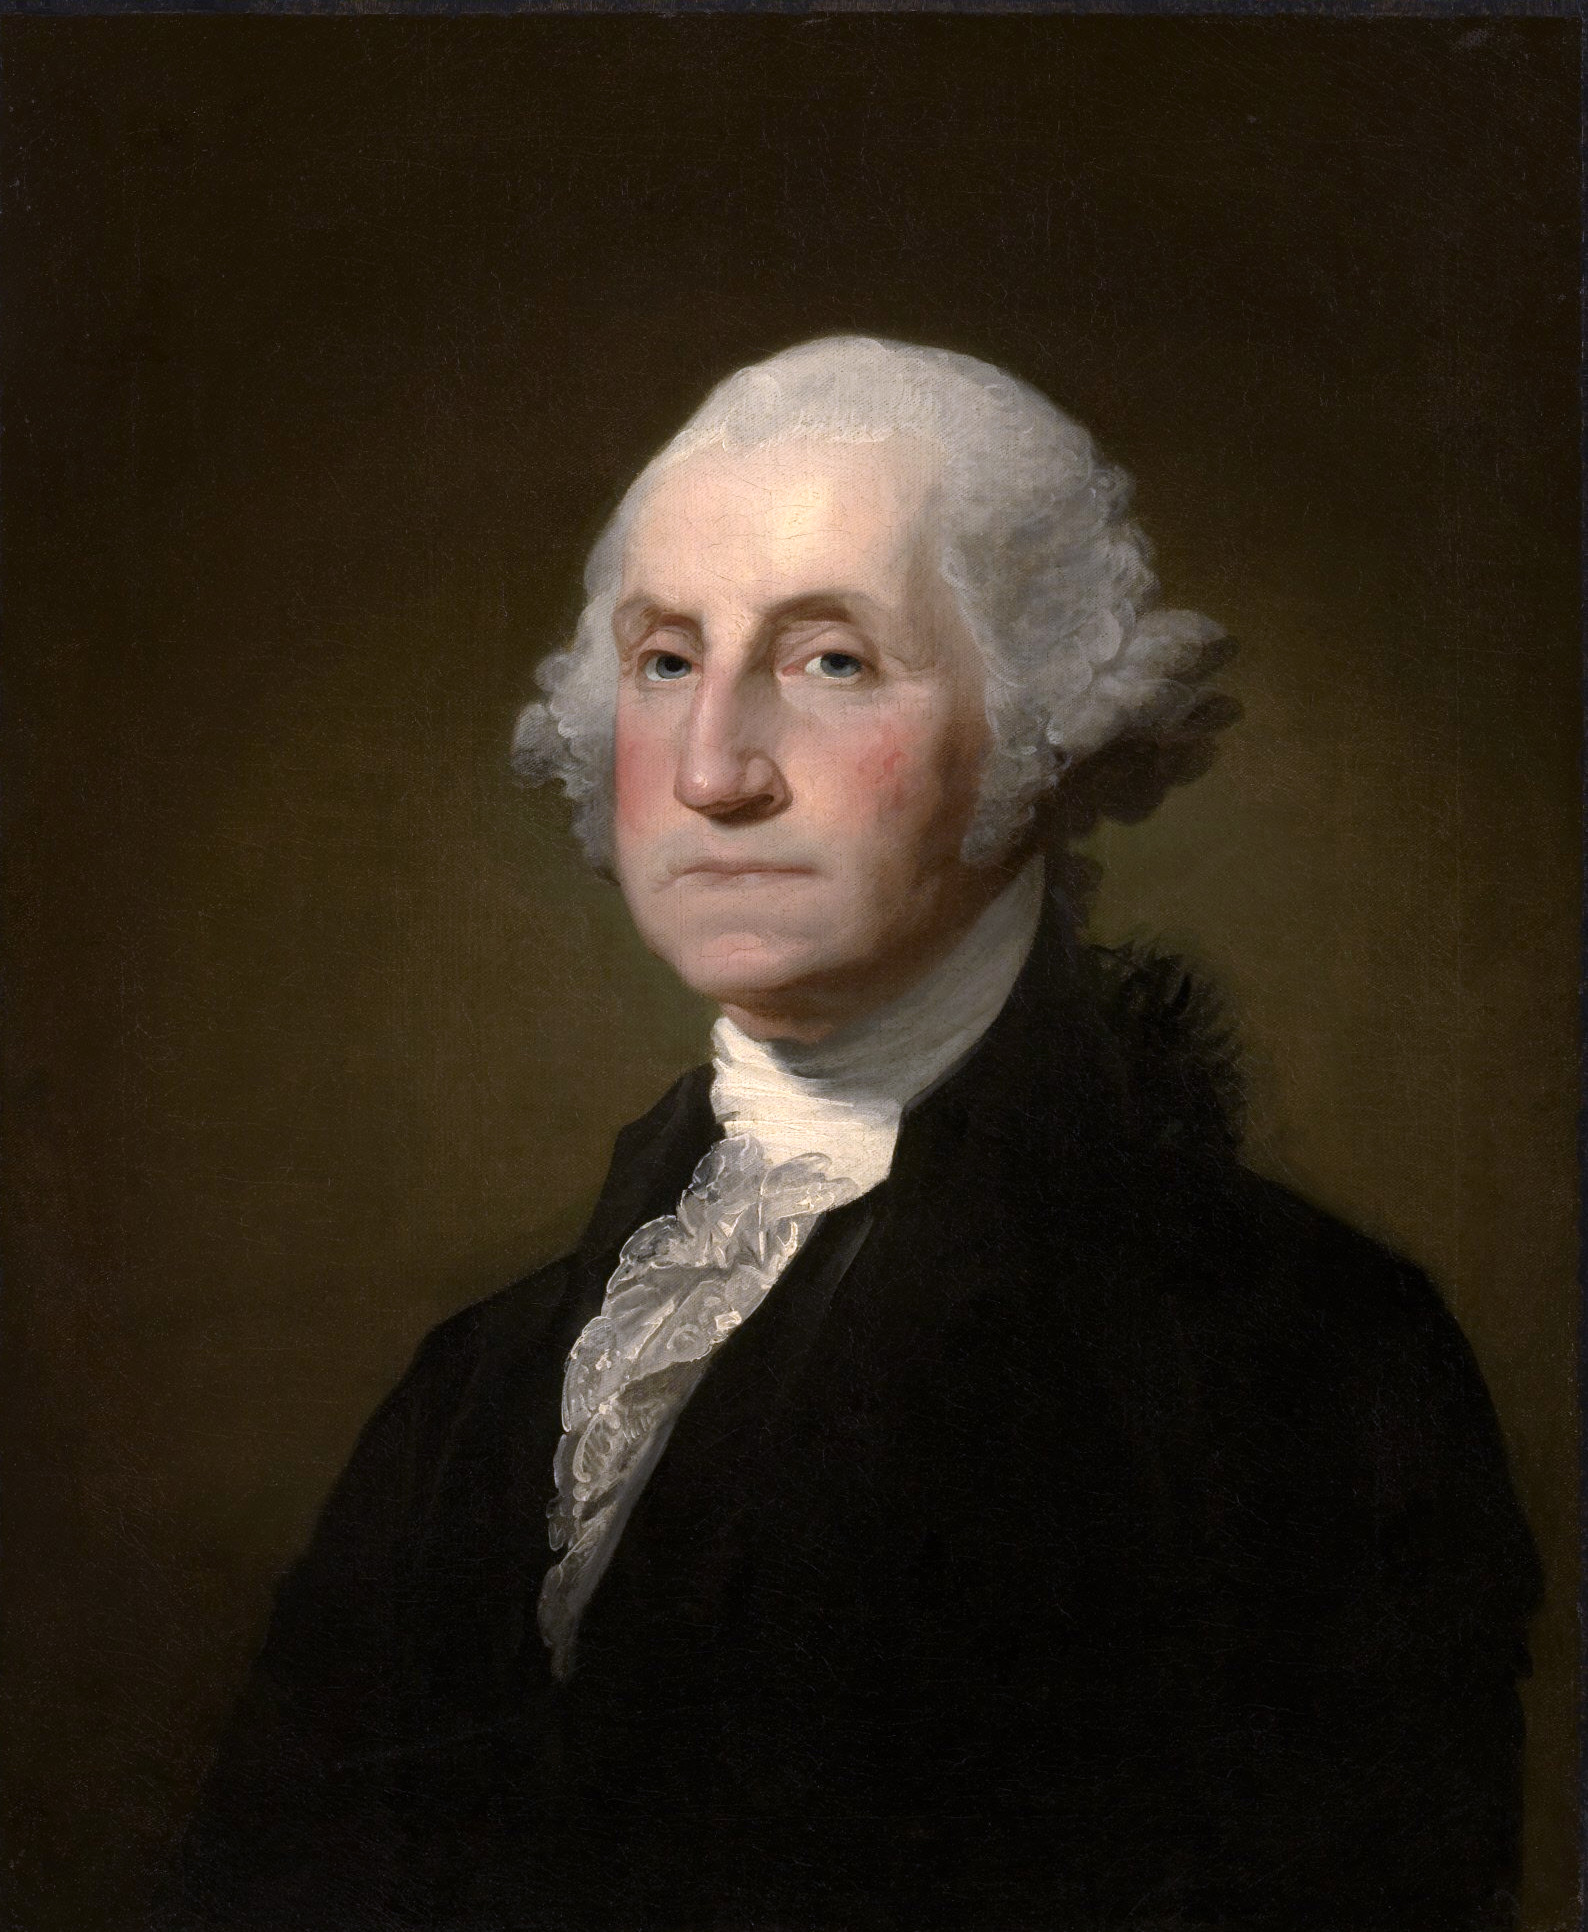 George Washington, primer presidente de los Estados Unidos